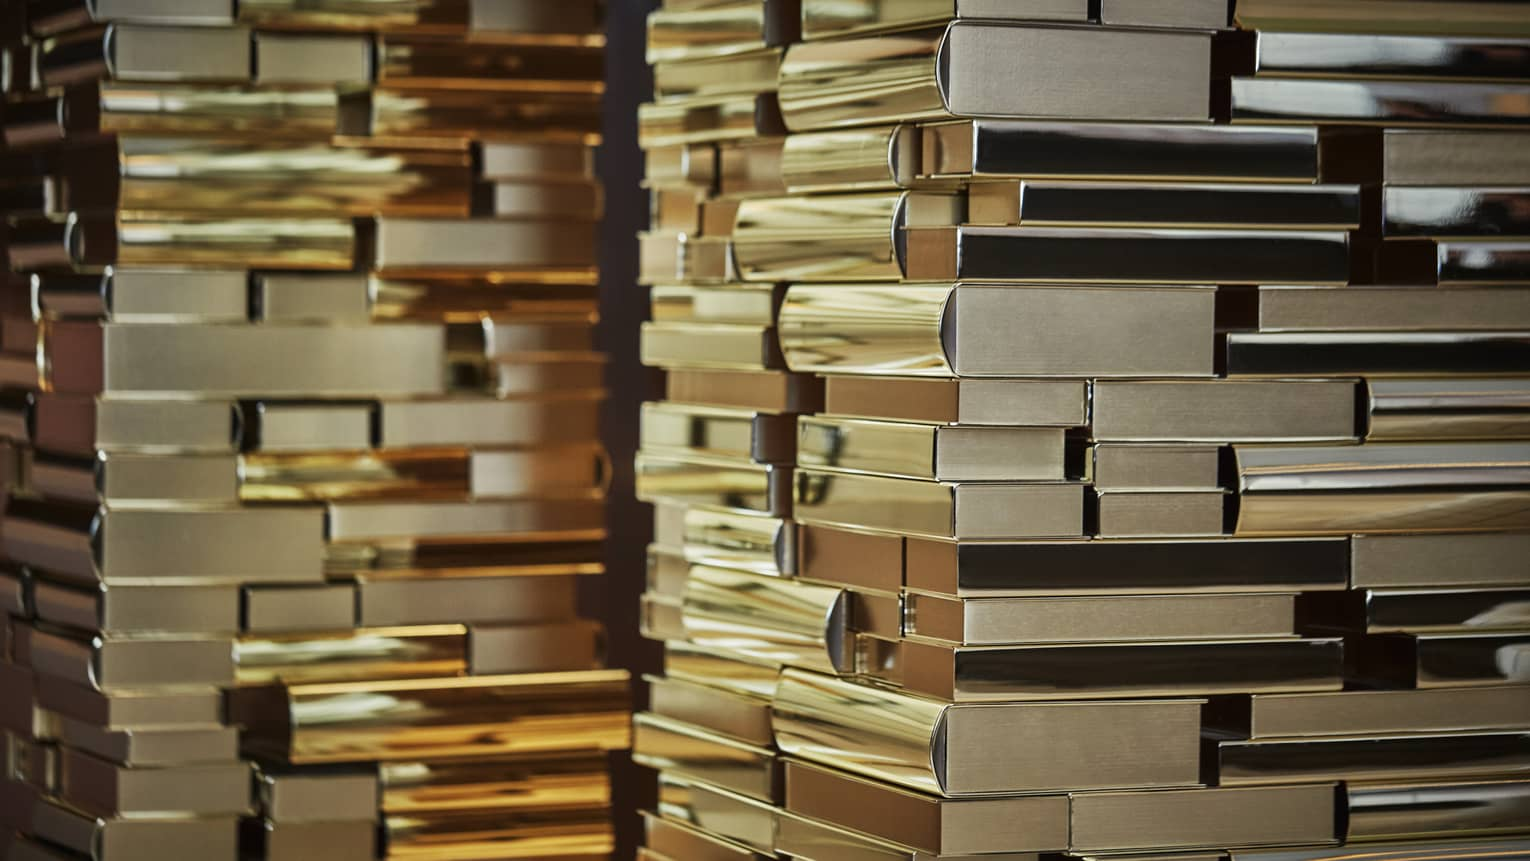 Art installation resembling many golden stacked books